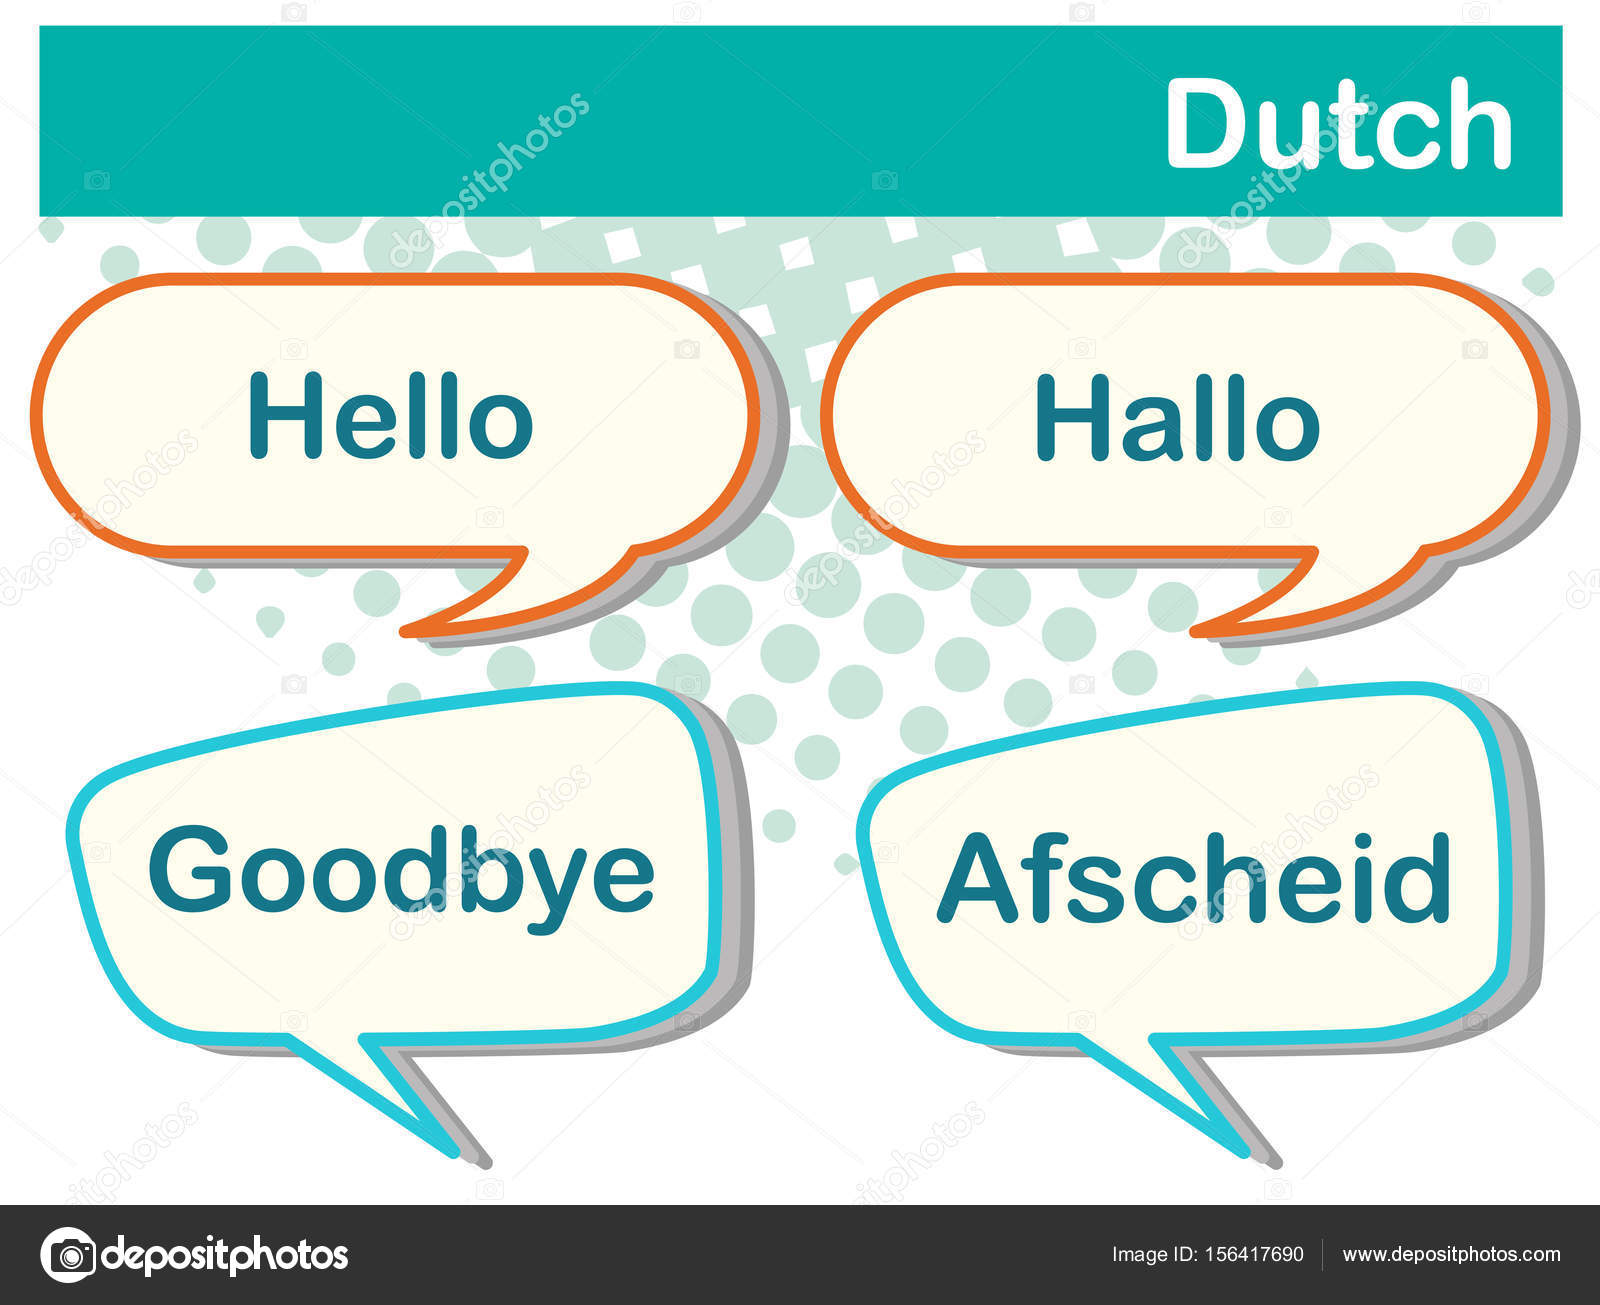 Greeting words in dutch language stock vector interactimages greeting words in dutch language stock vector m4hsunfo